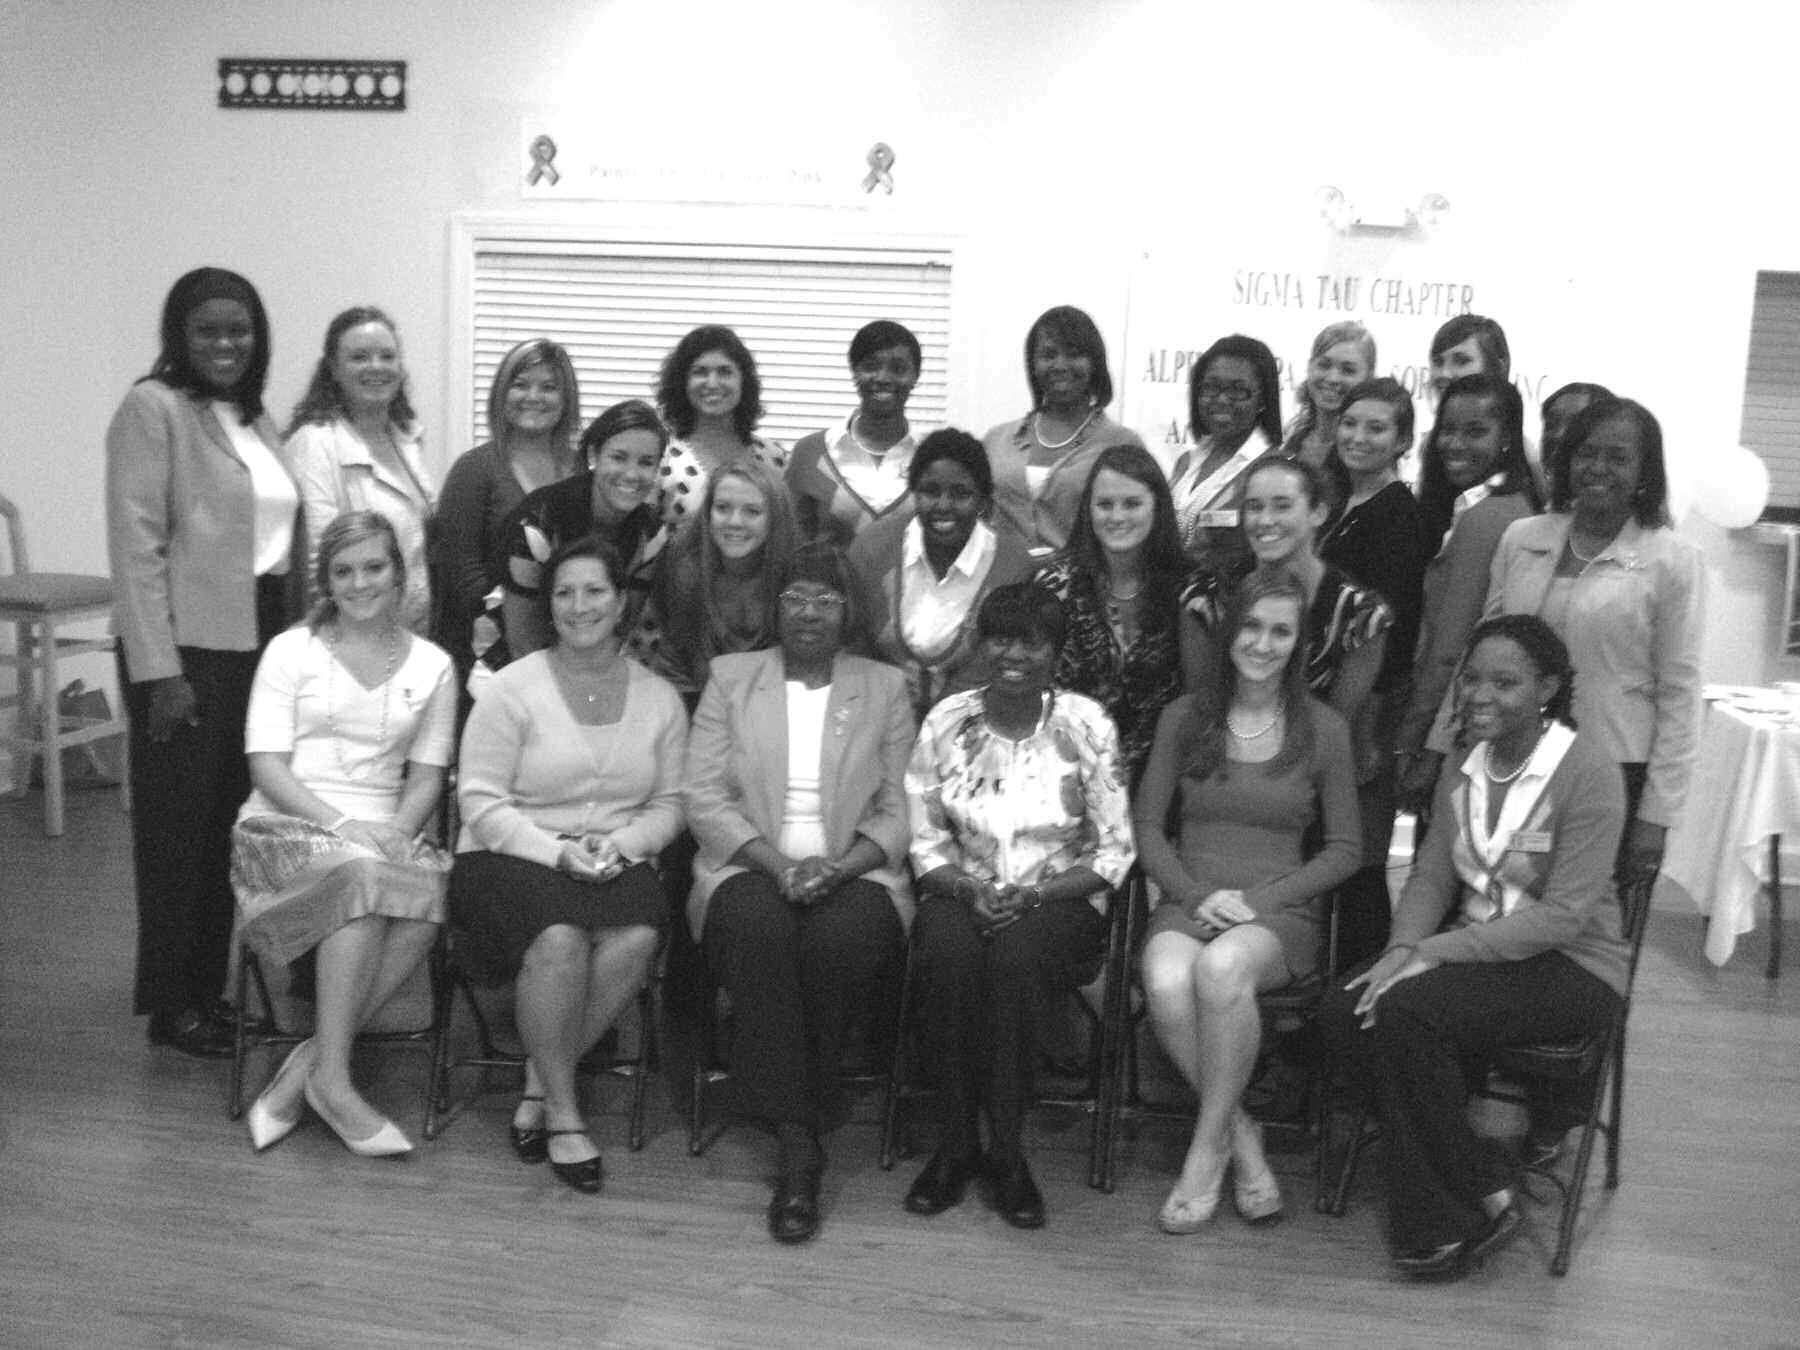 Sigma Tau Chapter members with guests at Breast Cancer Tea